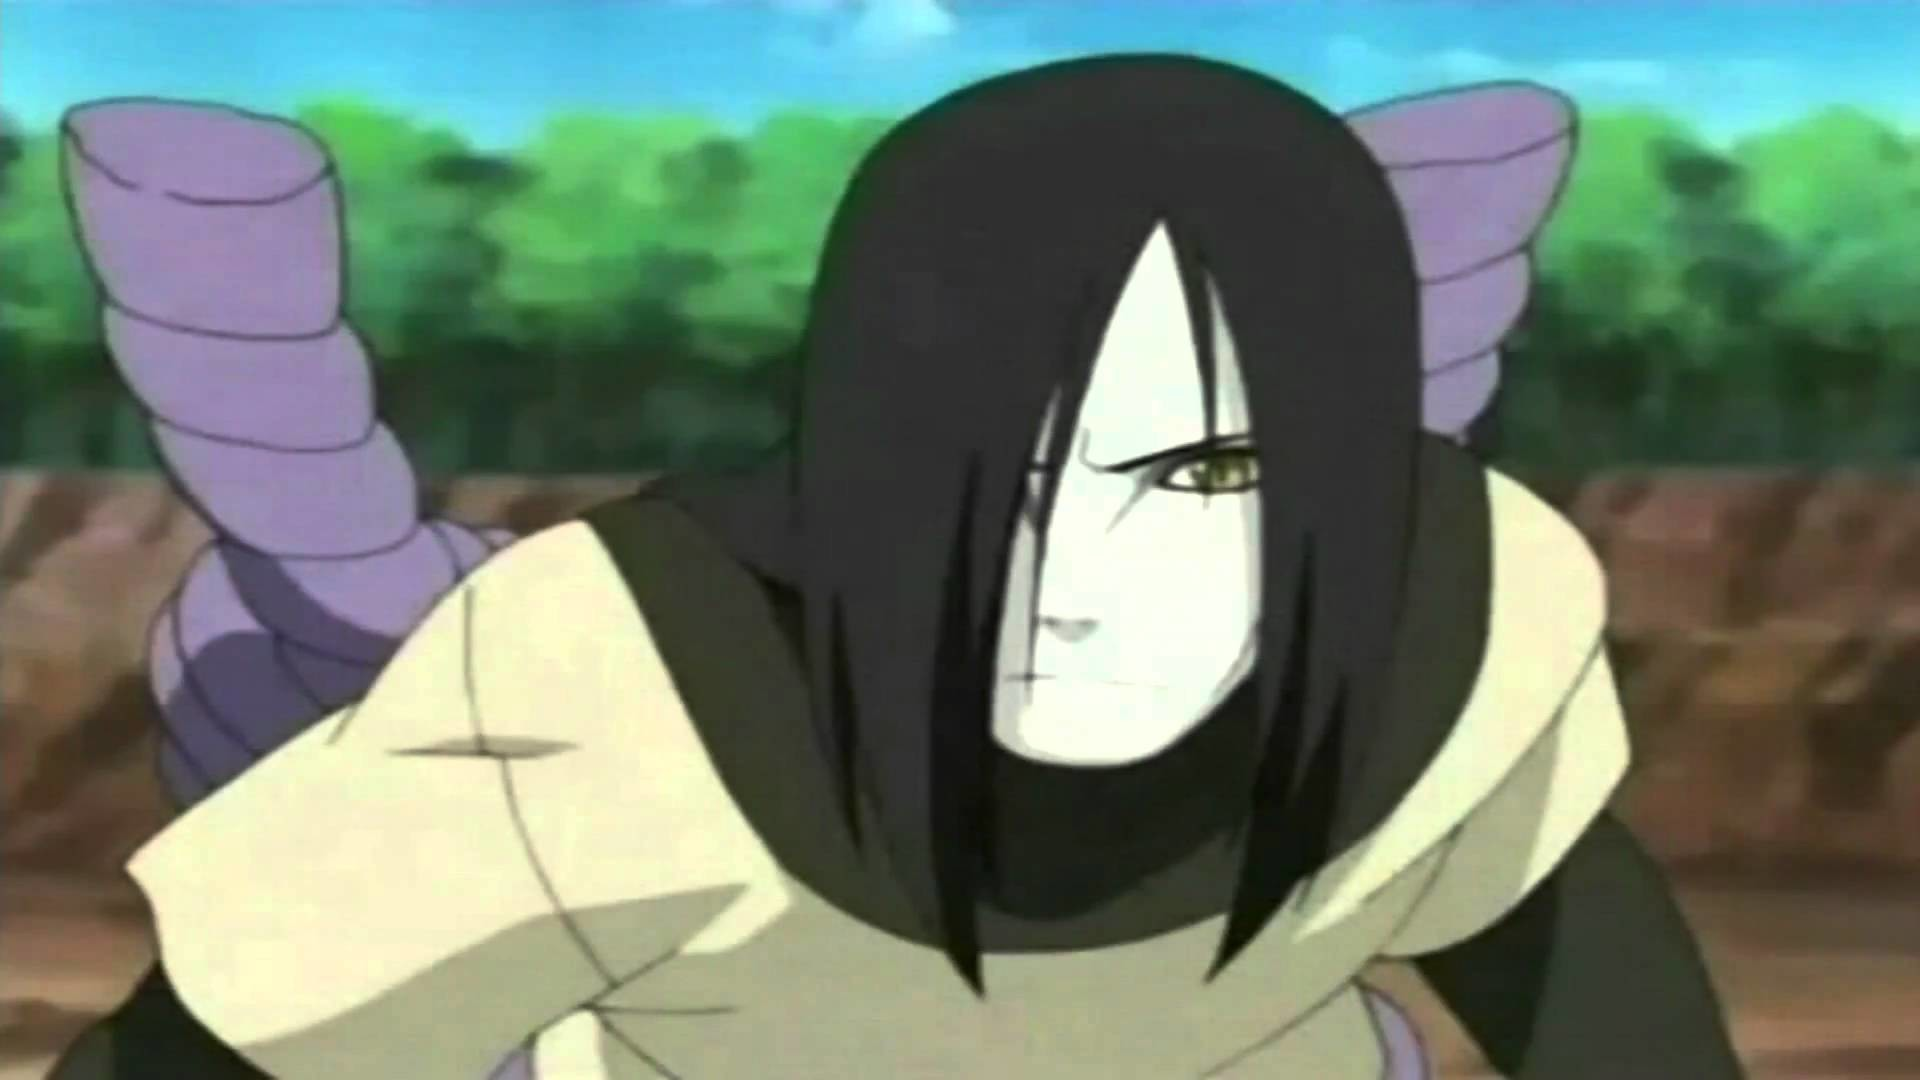 Naruto Hd Wallpapers Widescreen Orochimaru Wallpapers 60 Images